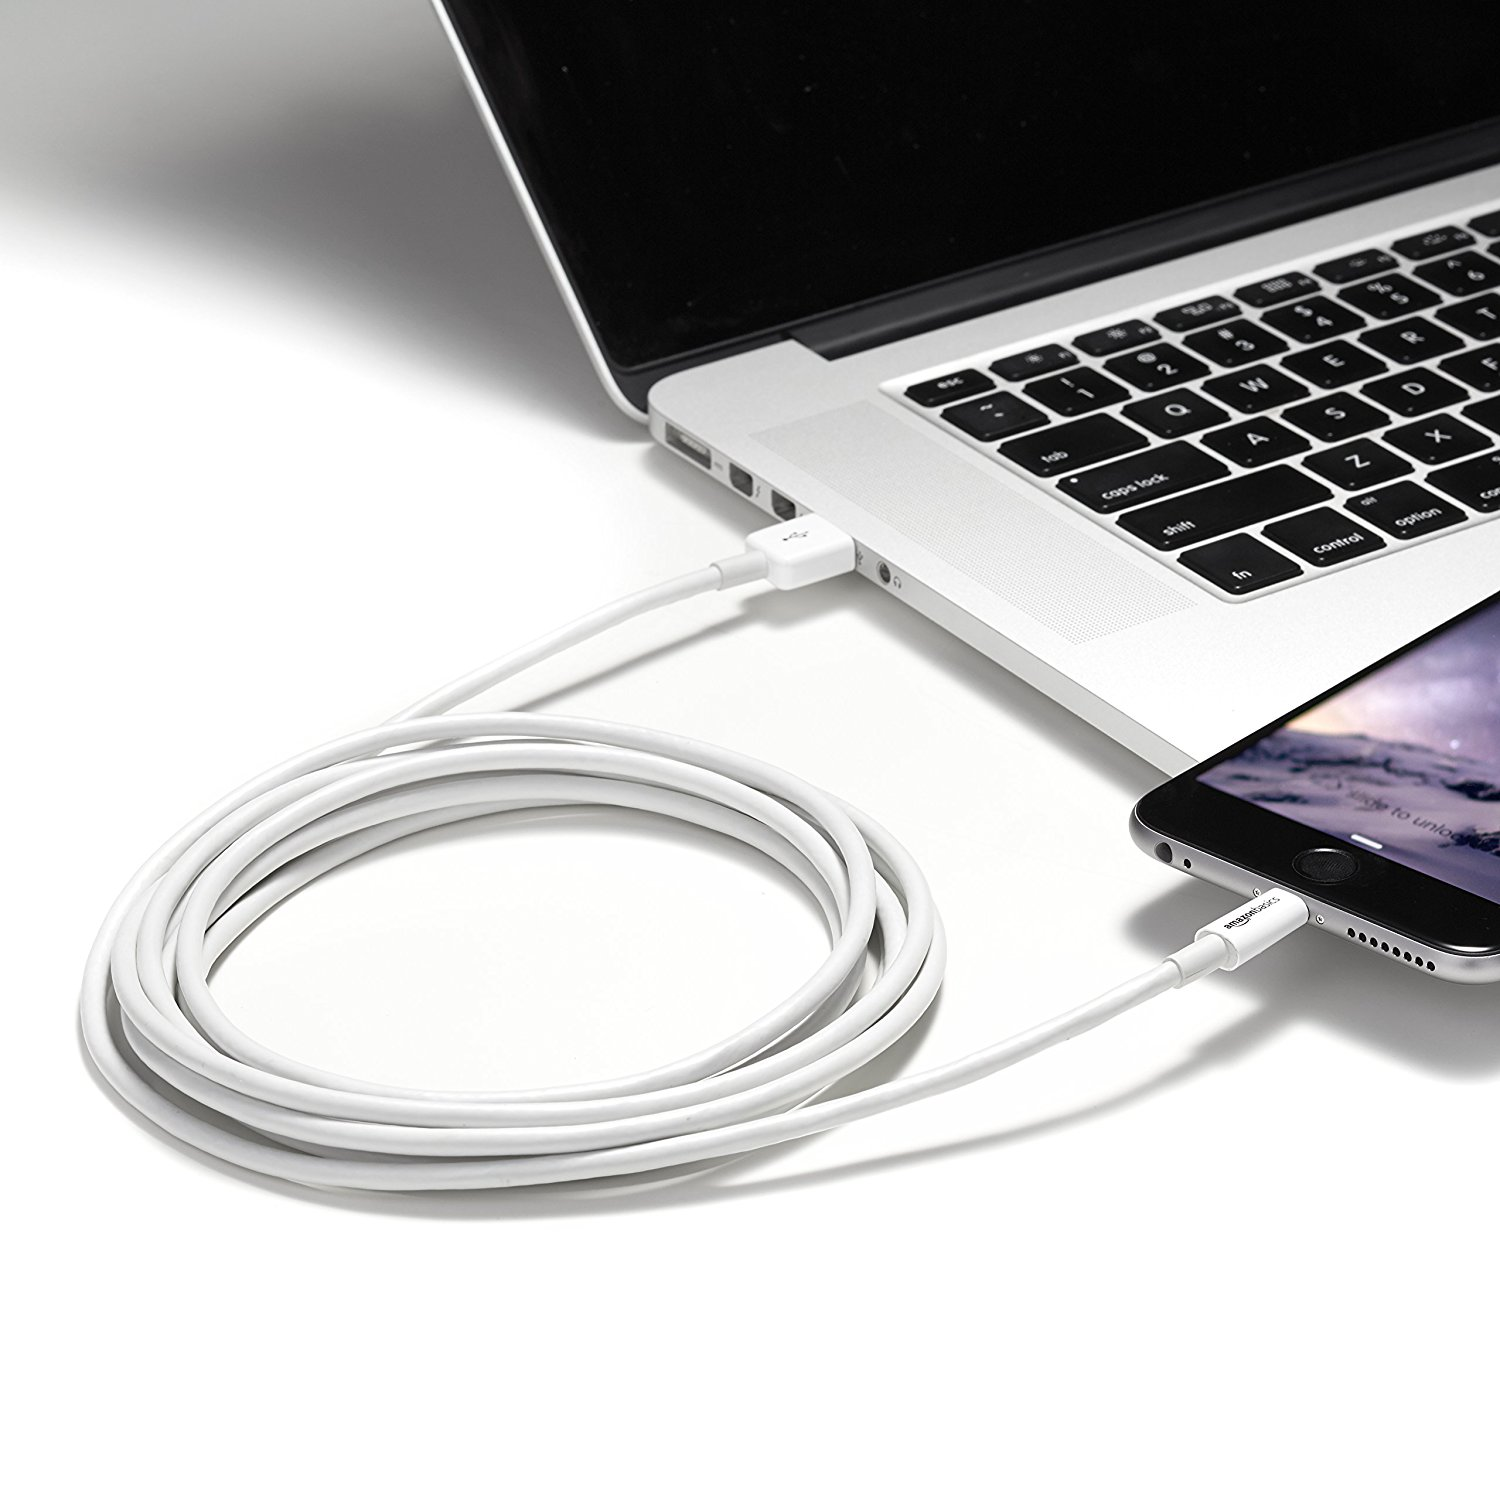 Fashion USB Cable MFi Certified White 6 Feet 1.8 Meters Charger for Phone and Smart Phone